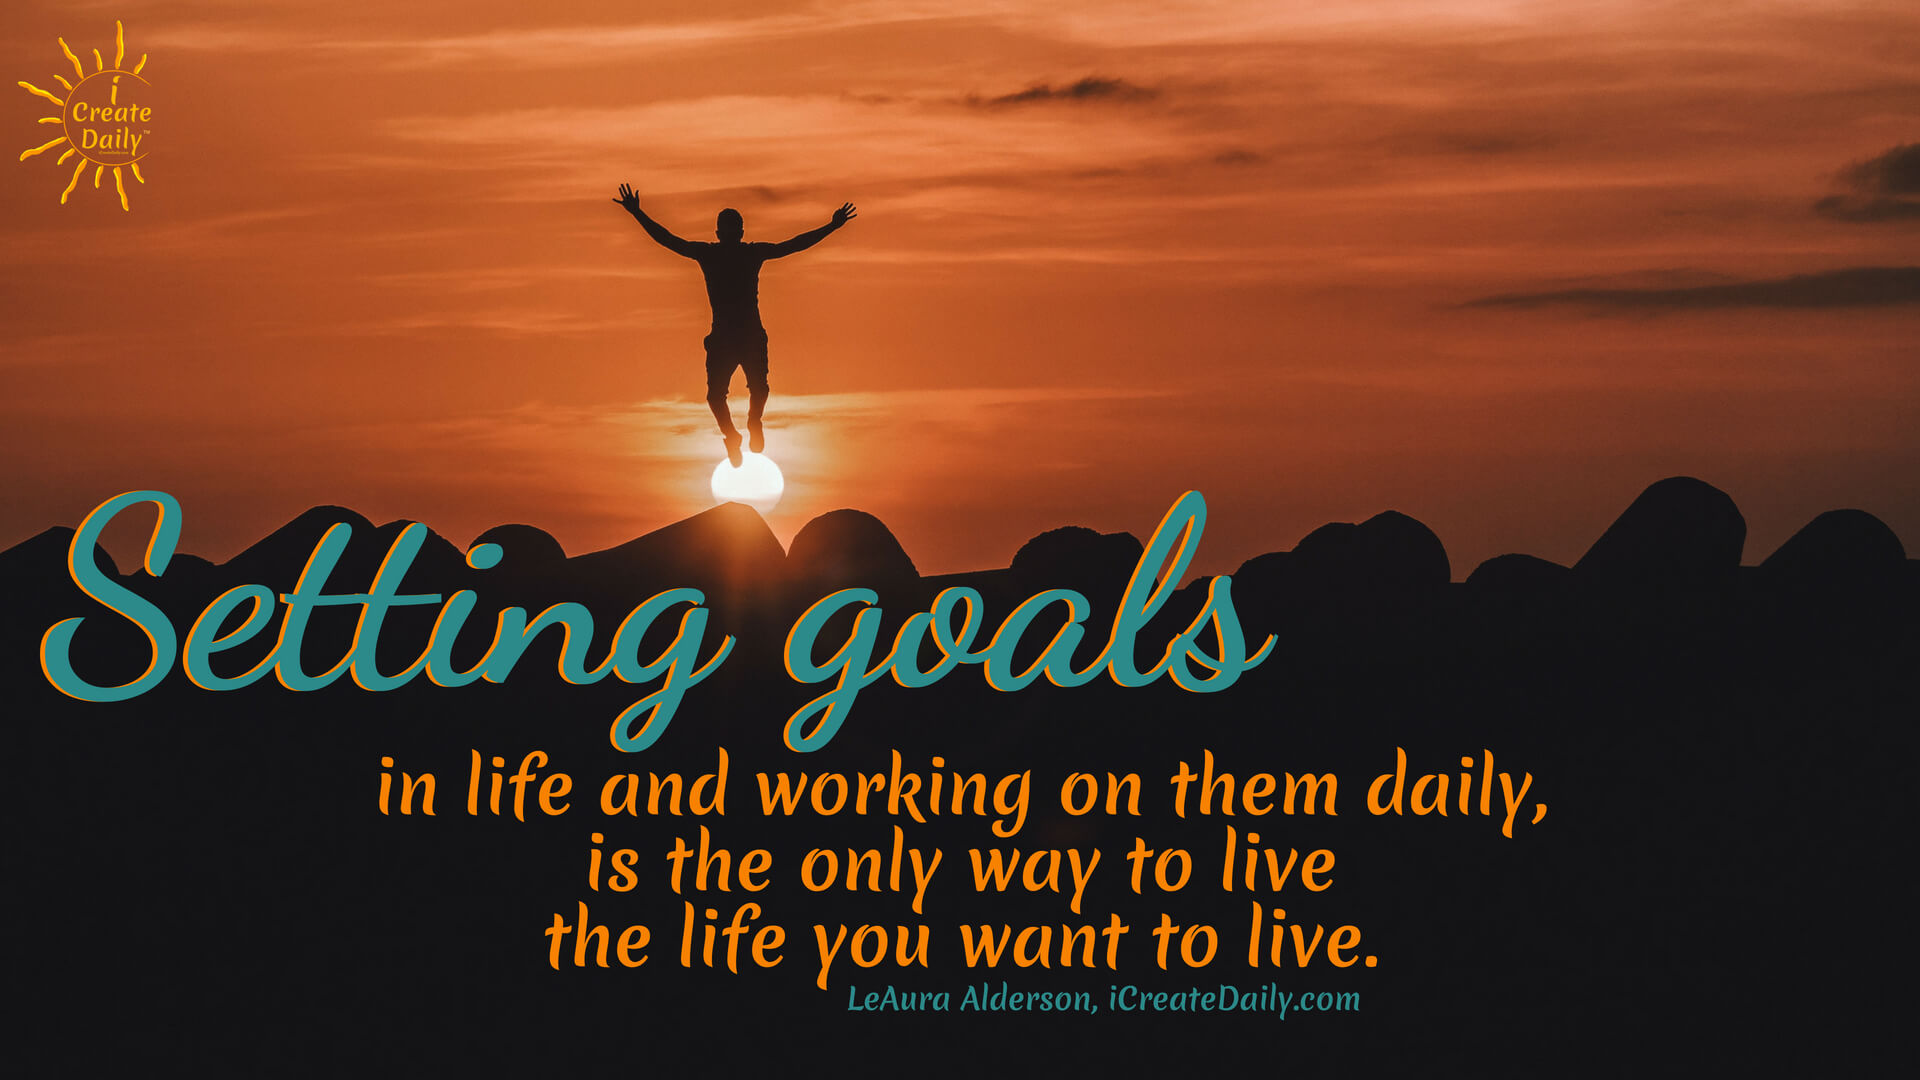 Do you know that most people never set goals in life?Yep. Most people spend more time each day planning and dreaming about what they want to eat or do or chatting on social media than they do planning out their day, let alone their life. So if you're here because you're diving deeper into the life goals topic, then kudos to you! #LifeGoals #Dreams #Journaling #ThingsToDo #ToDoPlanner #BucketLists #Adventure #Thoughts #Awesome #People #Fitness #Heavens #Personal #Career #Ideas #Bulletjournals #Planner #Quotes #Template #Motivation #Tips #Notebook #Inspiration  #Daily #Monthly #NewYear #AchieveYourGoals #GoalSetting